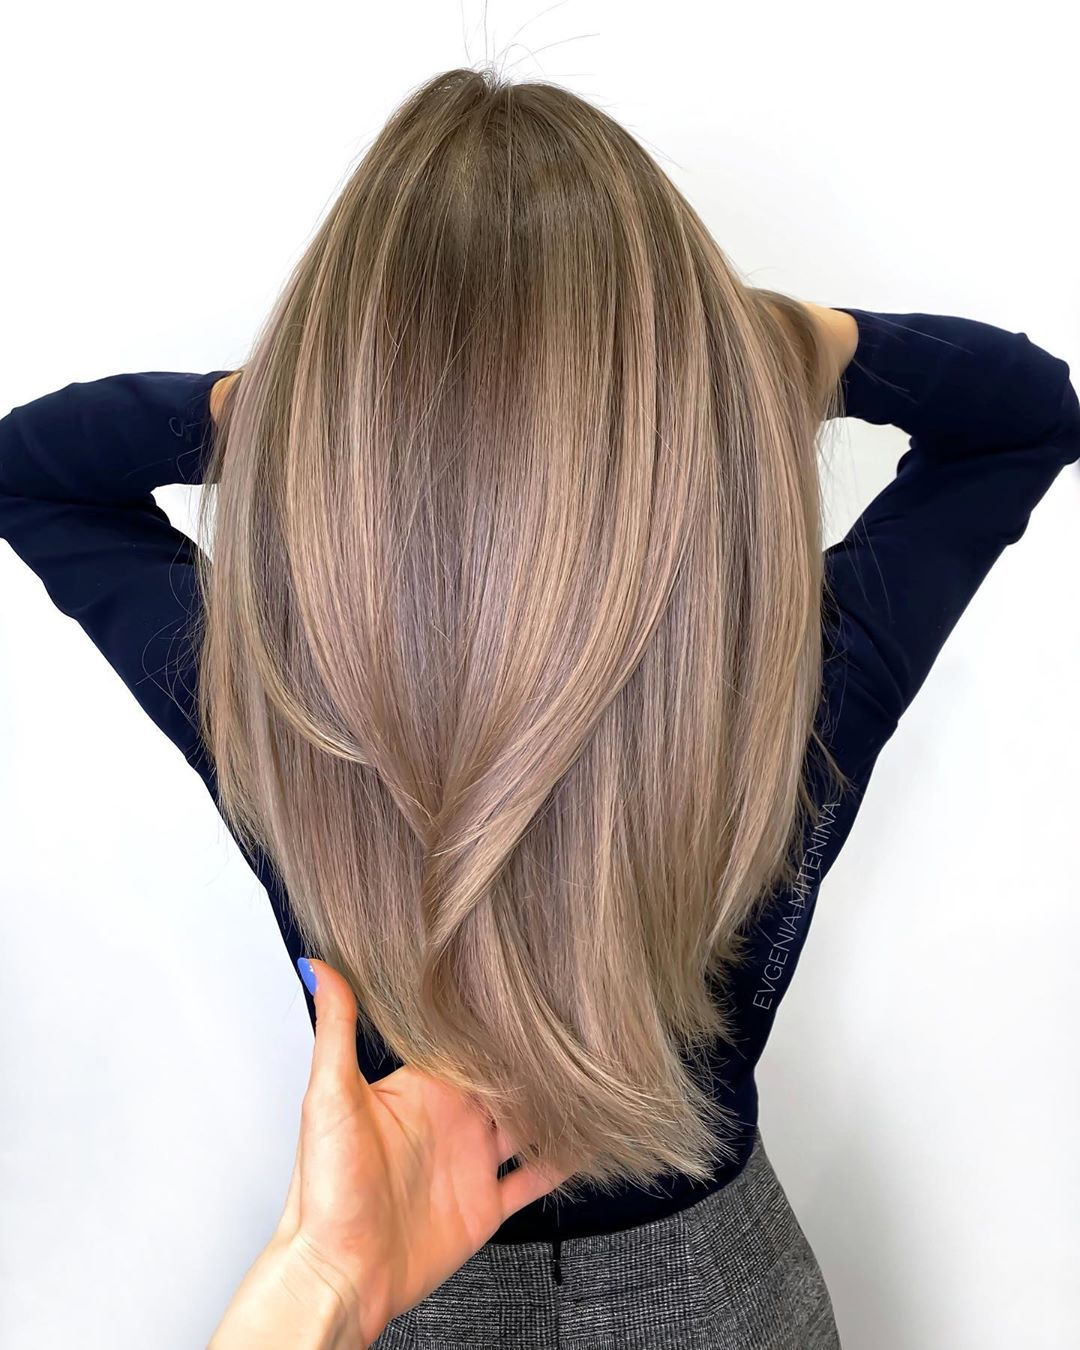 50 Best Layered Haircuts And Hairstyles For 2020 Hair Adviser In 2020 Hair Styles Long Hair Styles Balayage Hair